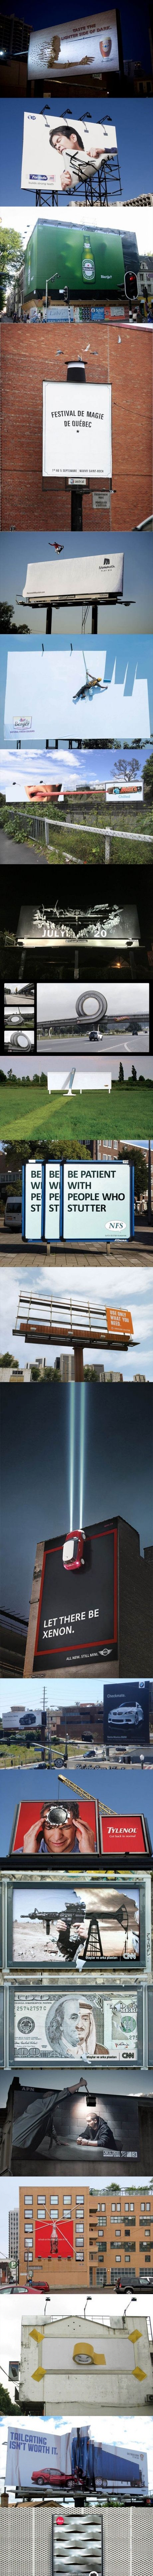 Awesome billboards. Repinned by Spark Strategic Ideas www.sparksi.com